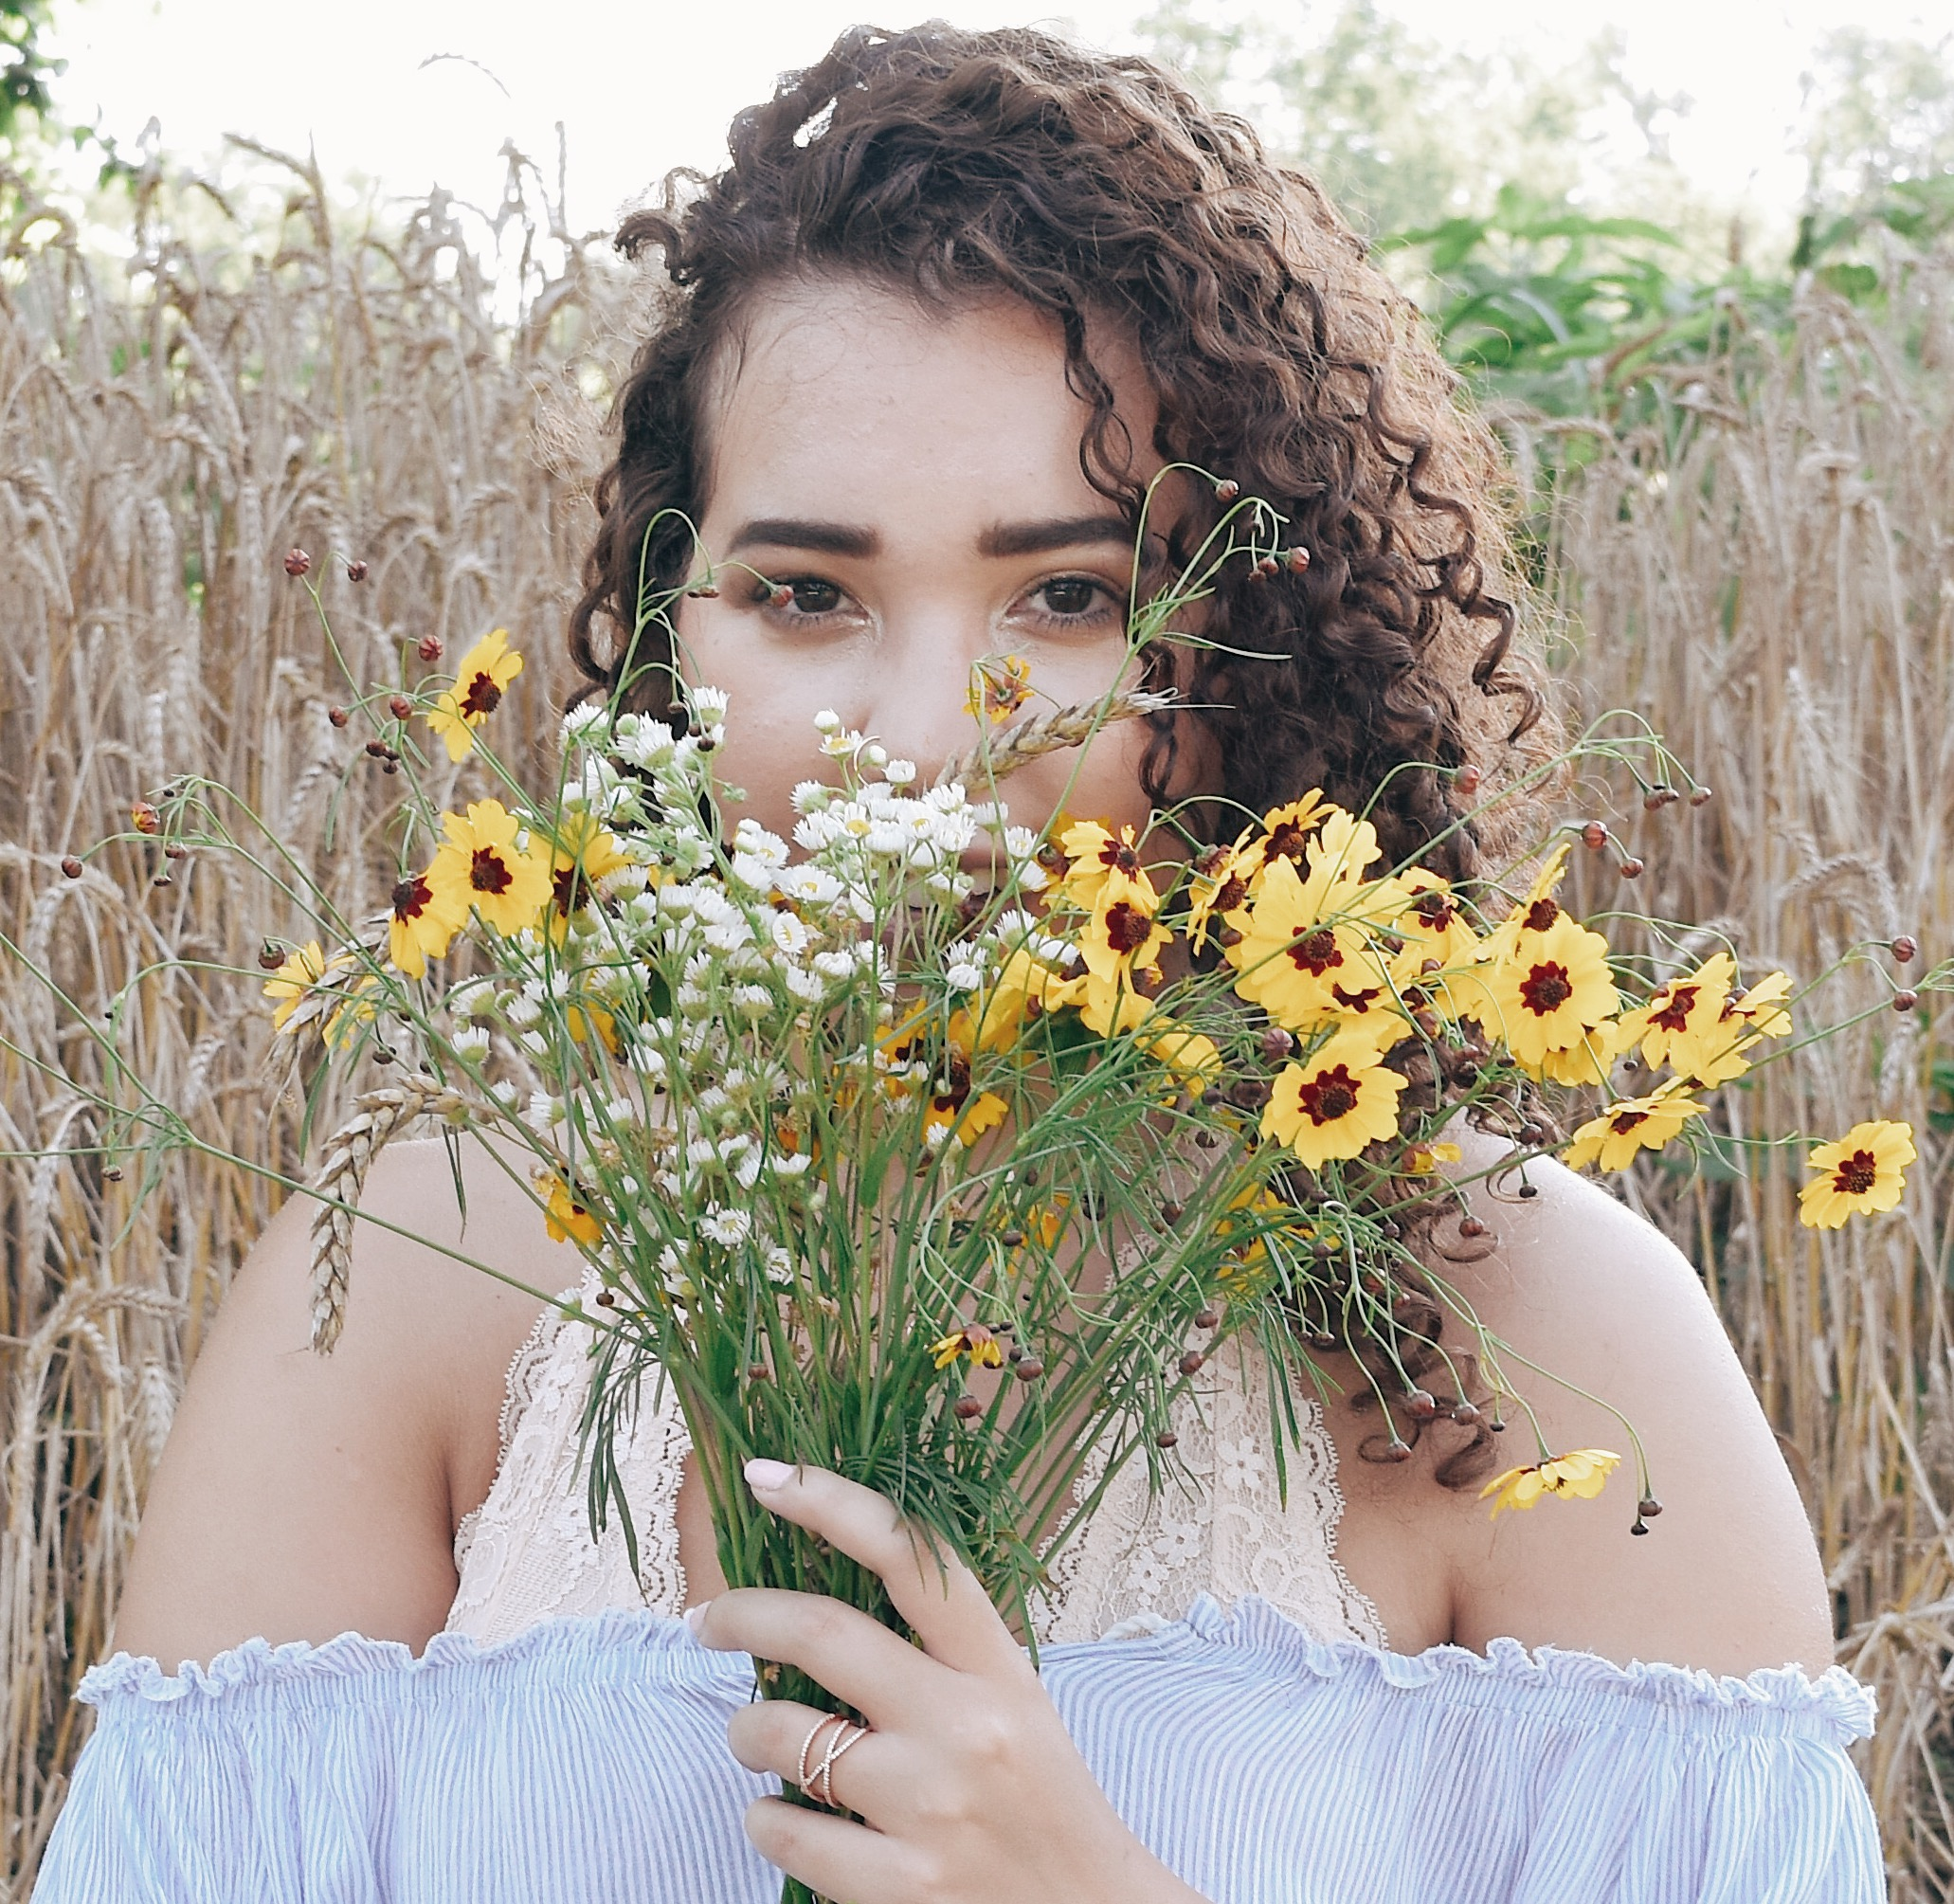 Wholehearted Wednesdays with Bria from Tendril Wild | Interview Series | Being An Introvert | Self-Care | Community | Female Empowerment | Women | Community Over Competition | Storytelling | Authenticity | Wholehearted Woman